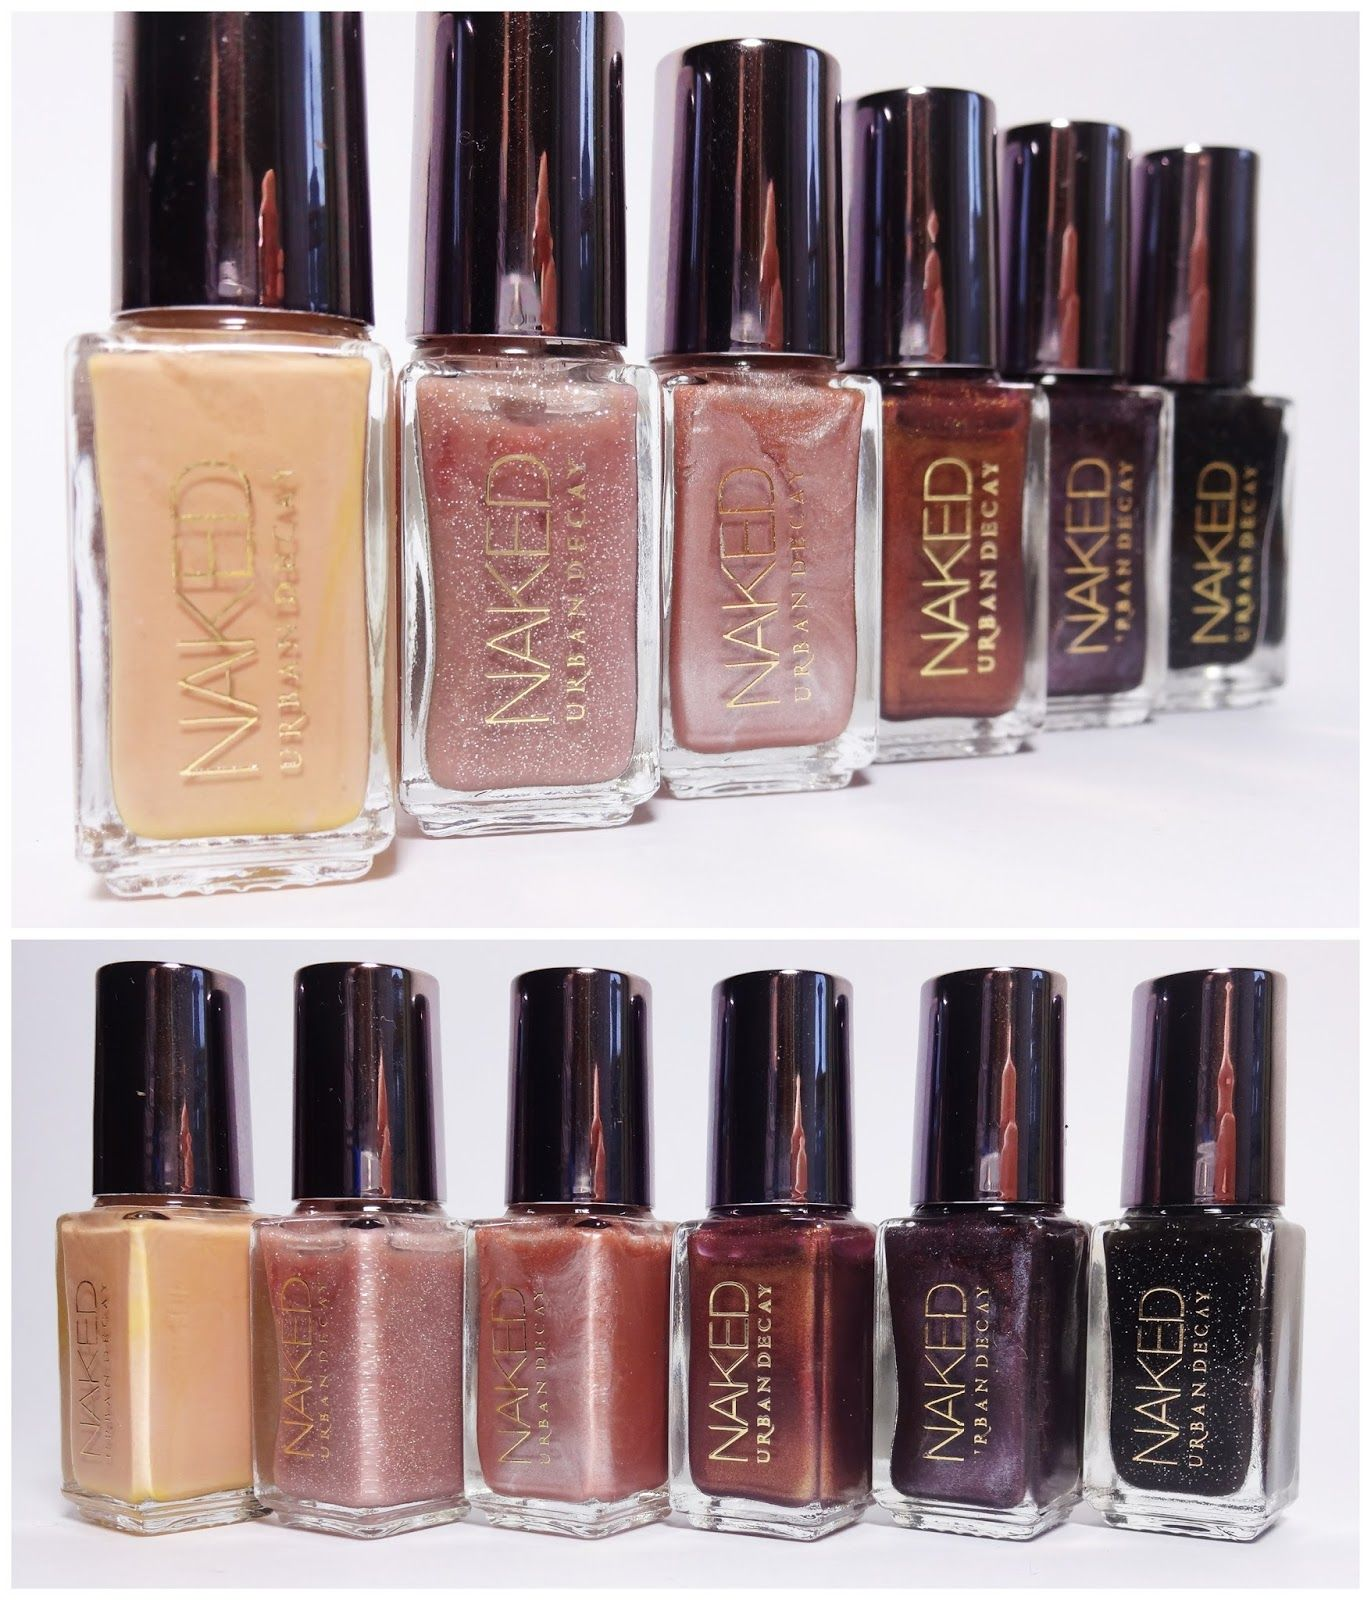 Urban Decay - NAKED Nagellack Nail Polish